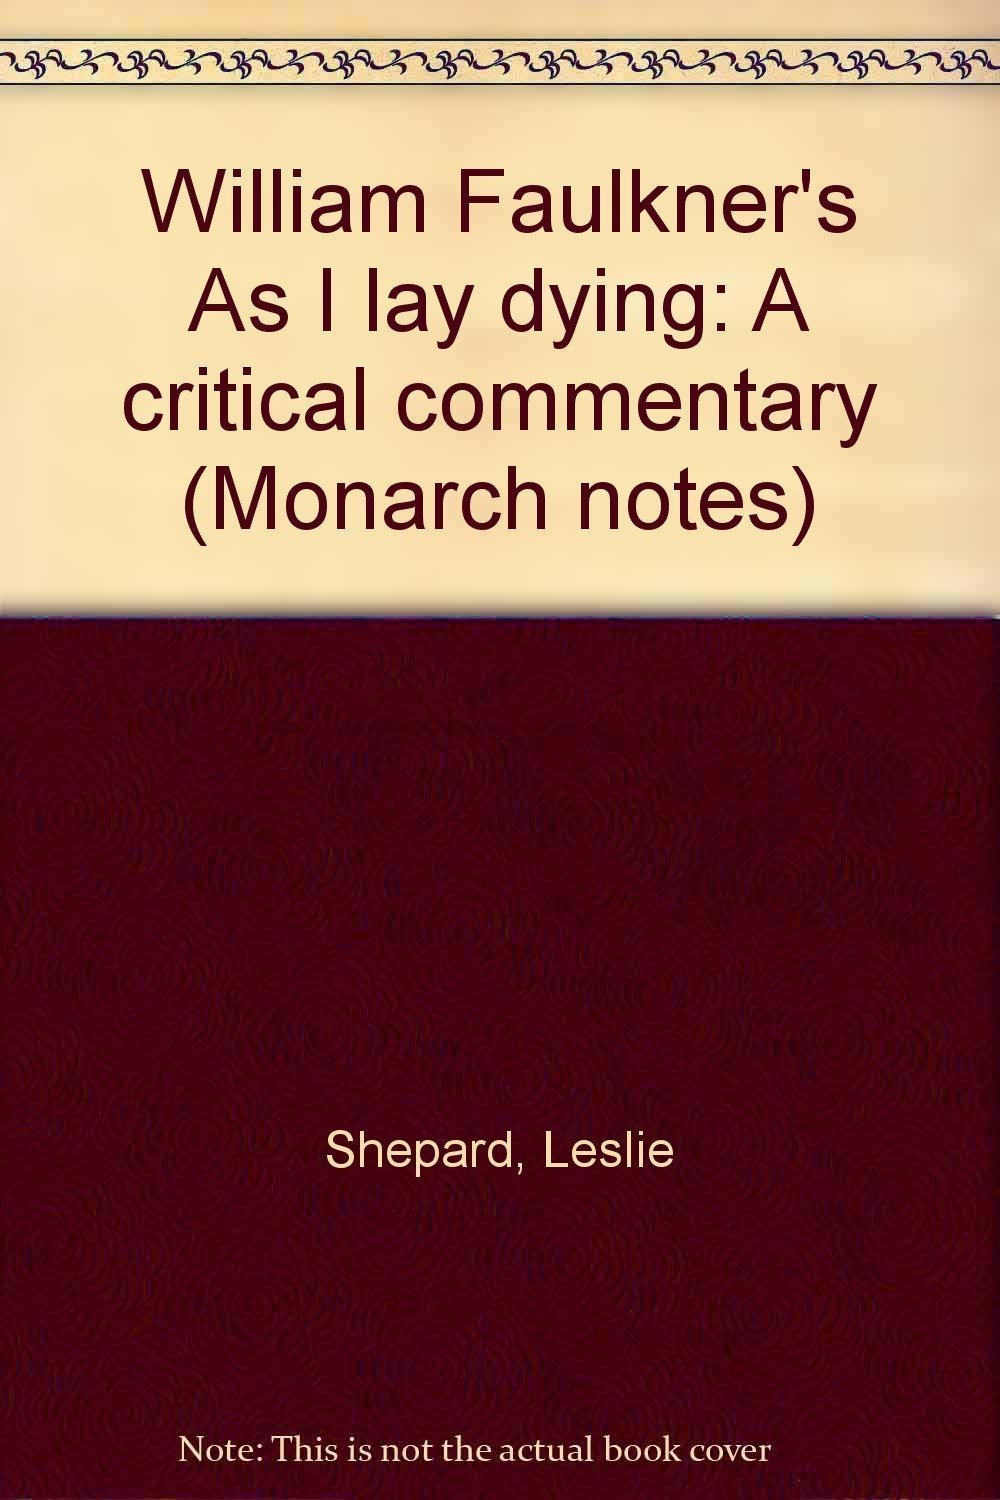 William Faulkner's As I Lay Dying (Monarch Notes) by Leslie Shepard